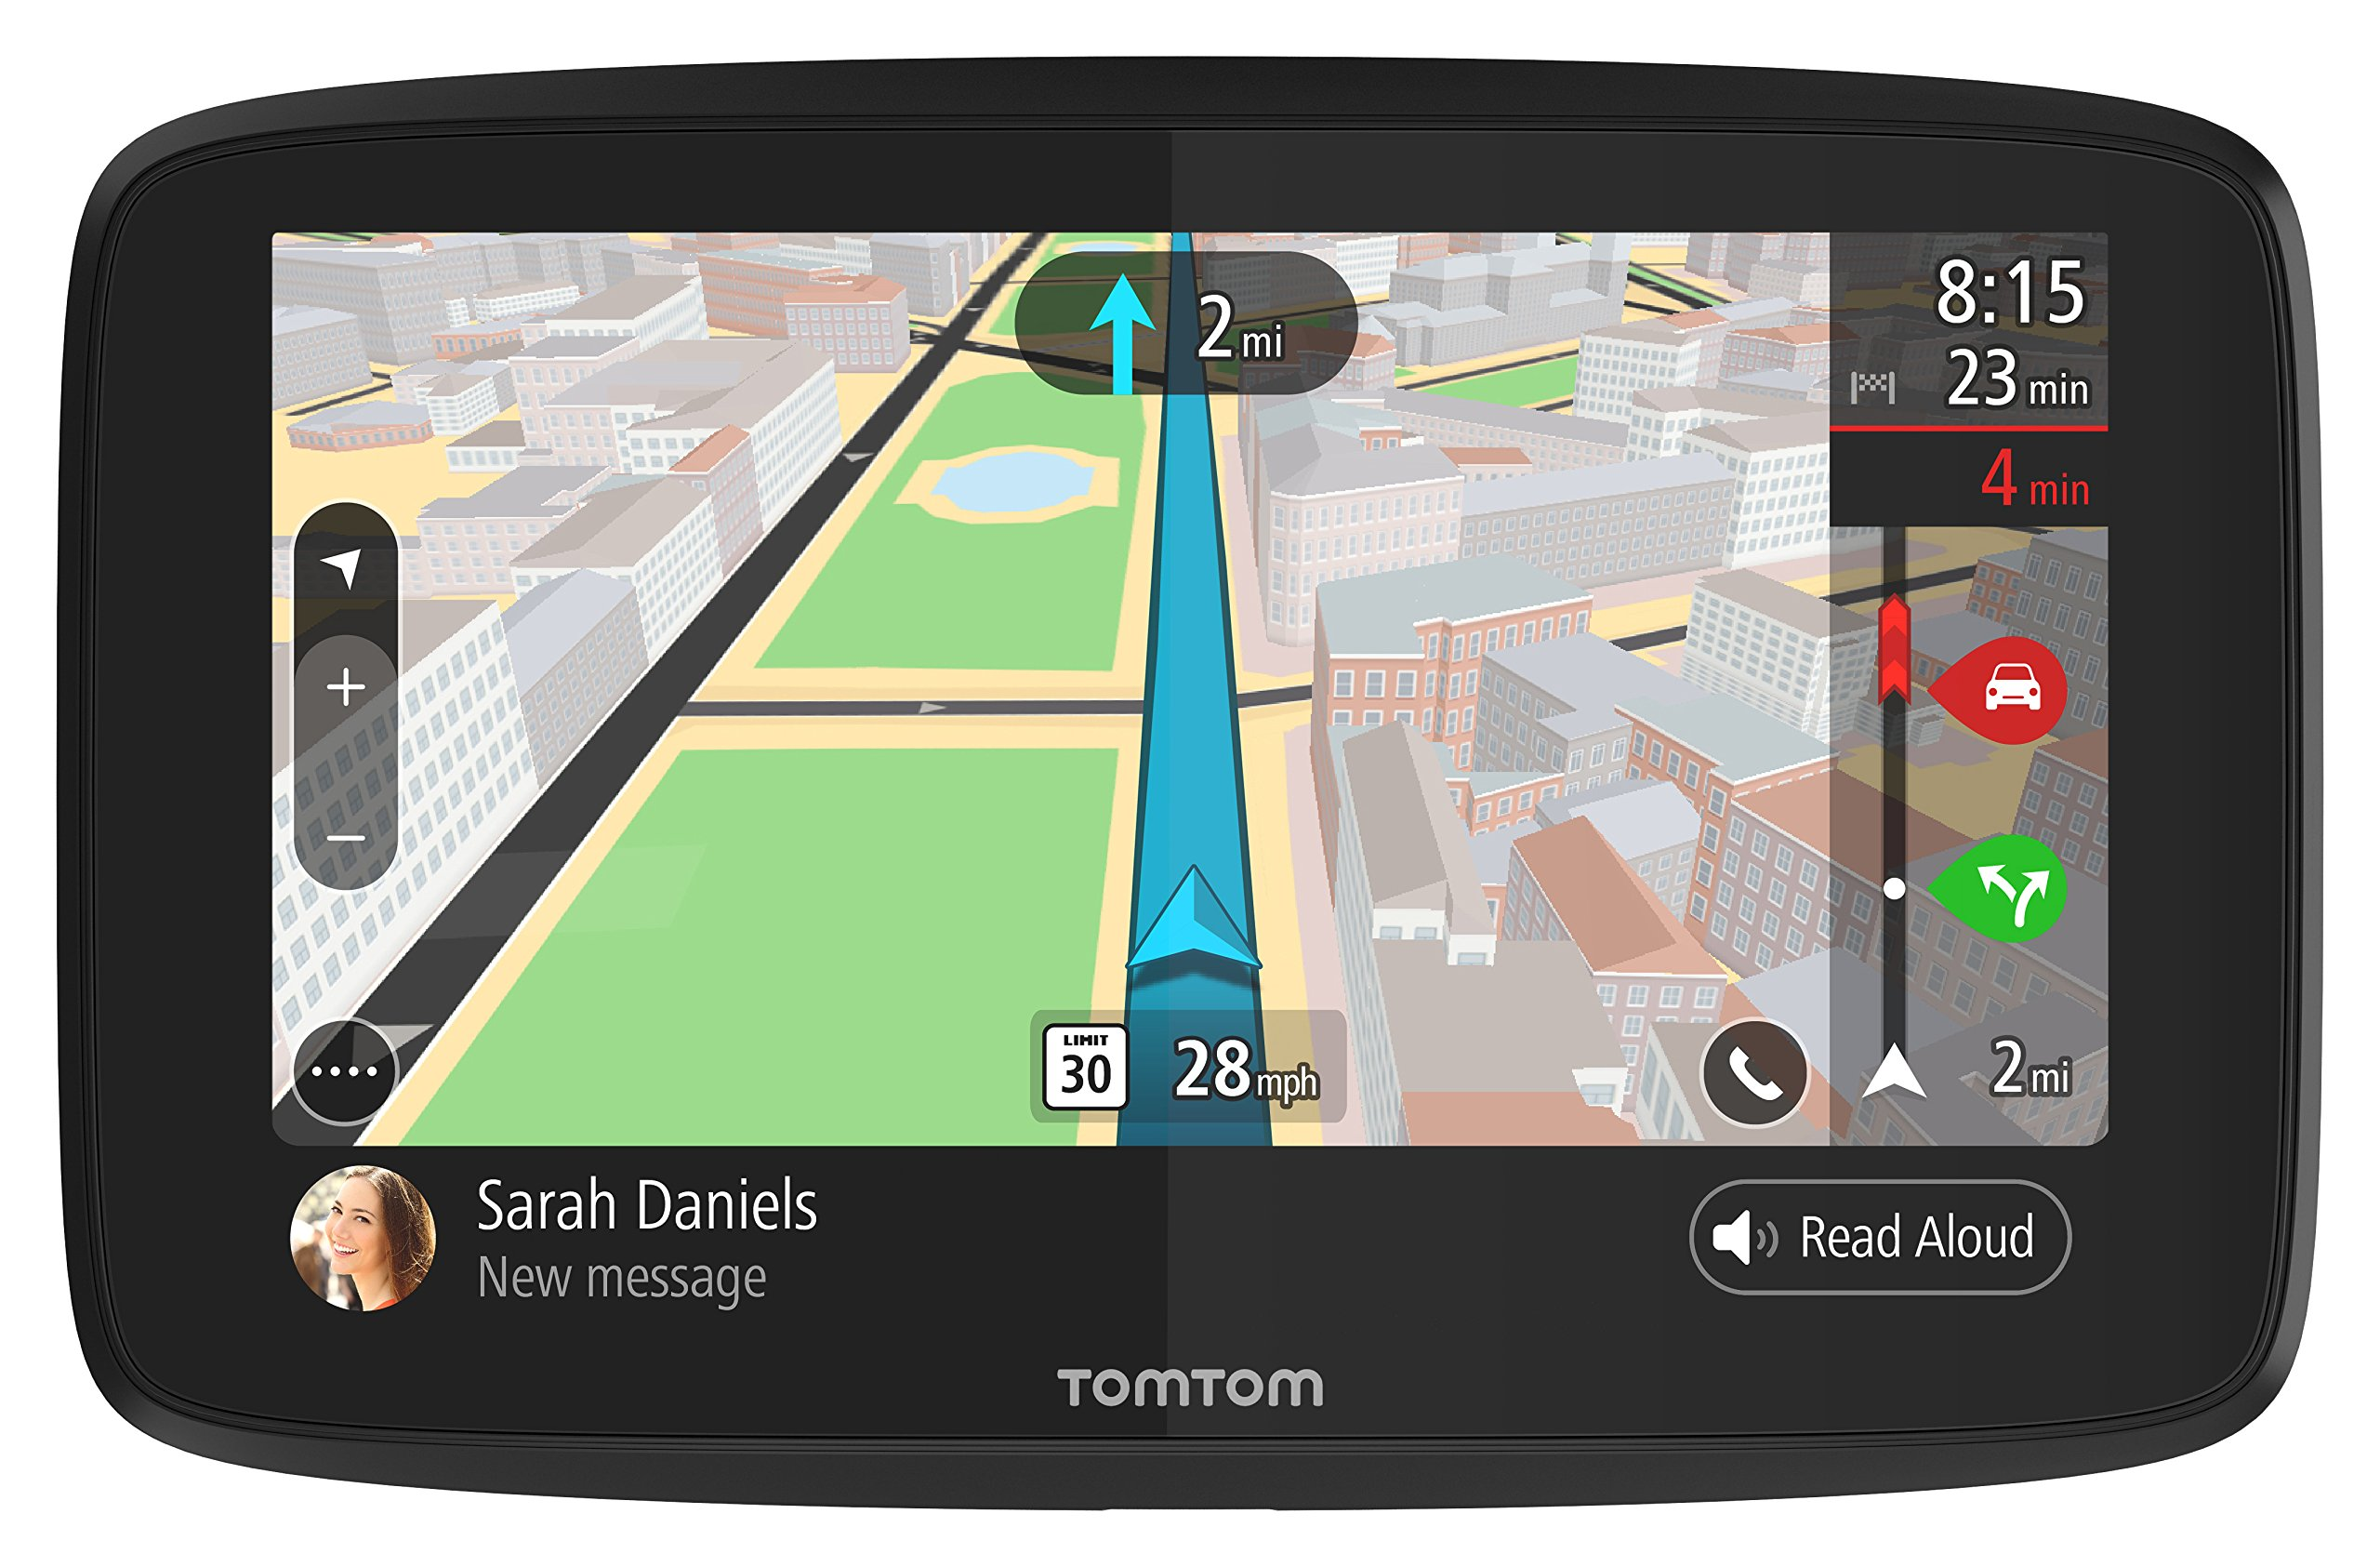 Car GPS Navigation 5 Inch Display TomTom Go 52 with WiFi, Lifetime Maps and Traffic, Siri and Google Now Compatible, Hands-Free Calling and Smartphone Messaging by TomTom